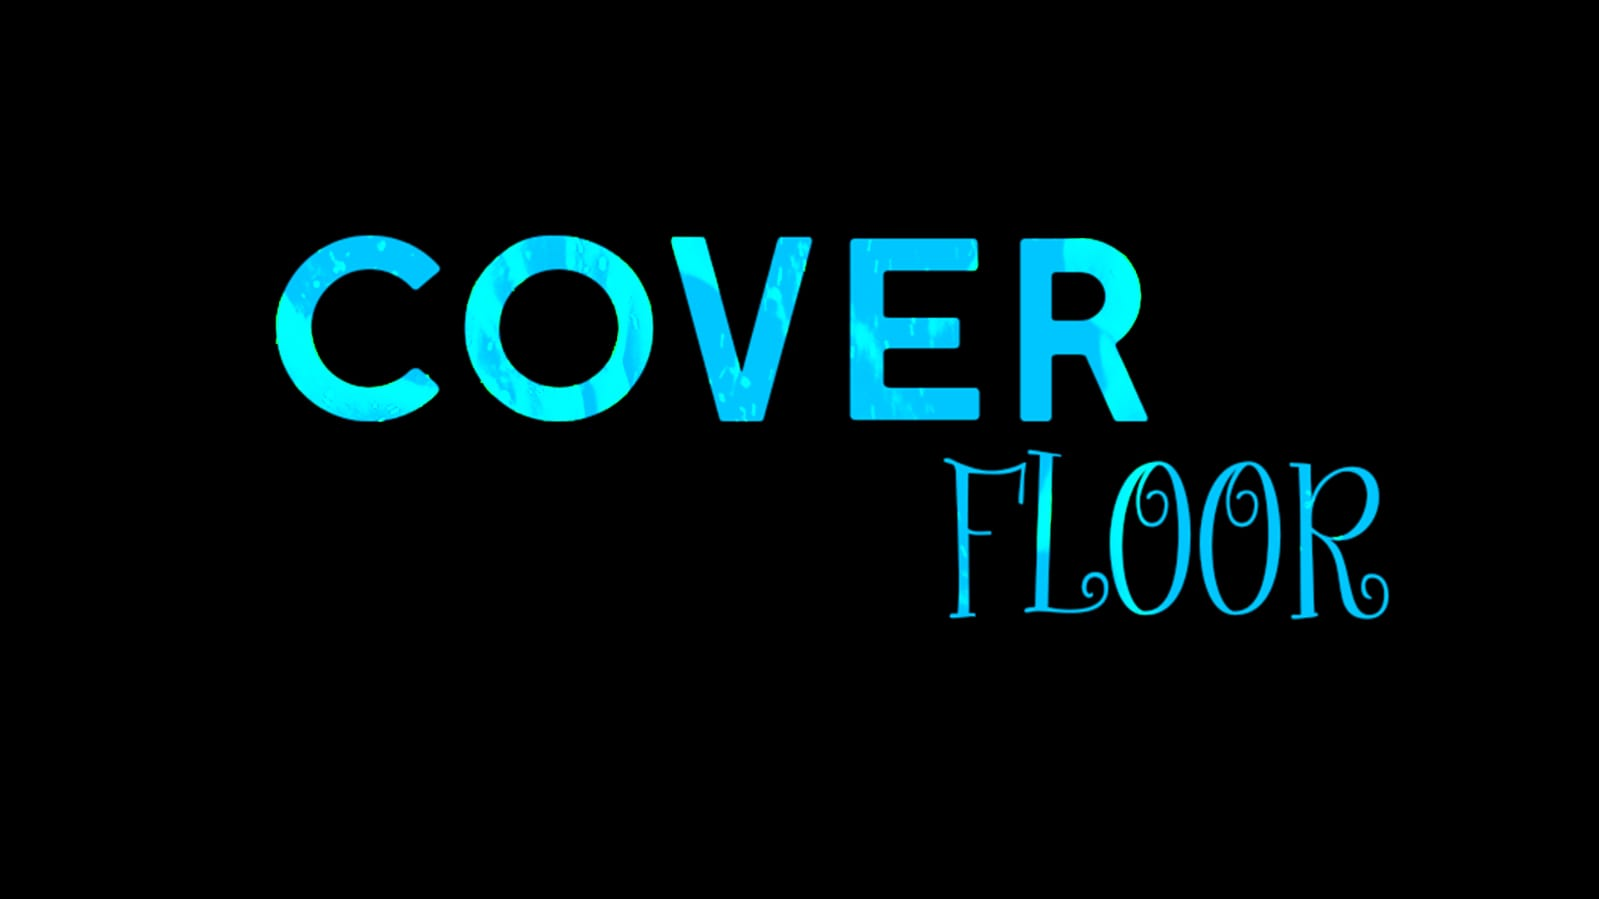 Coverfloor